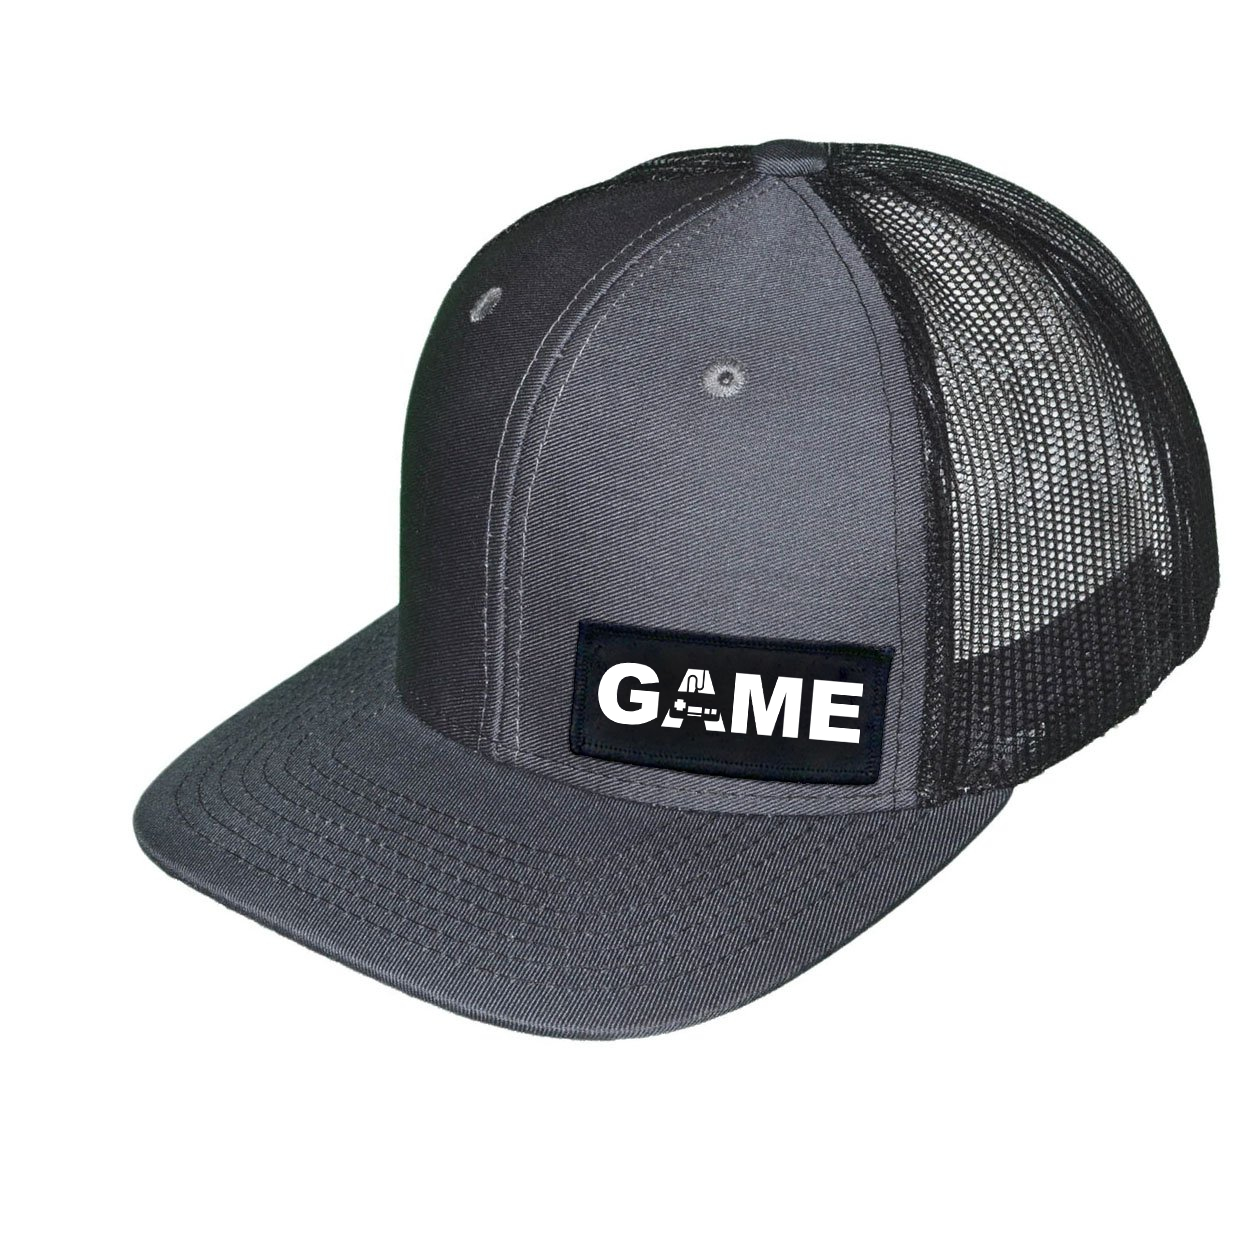 Game Controller Logo Night Out Woven Patch Snapback Trucker Hat Dark Gray/Black (White Logo)